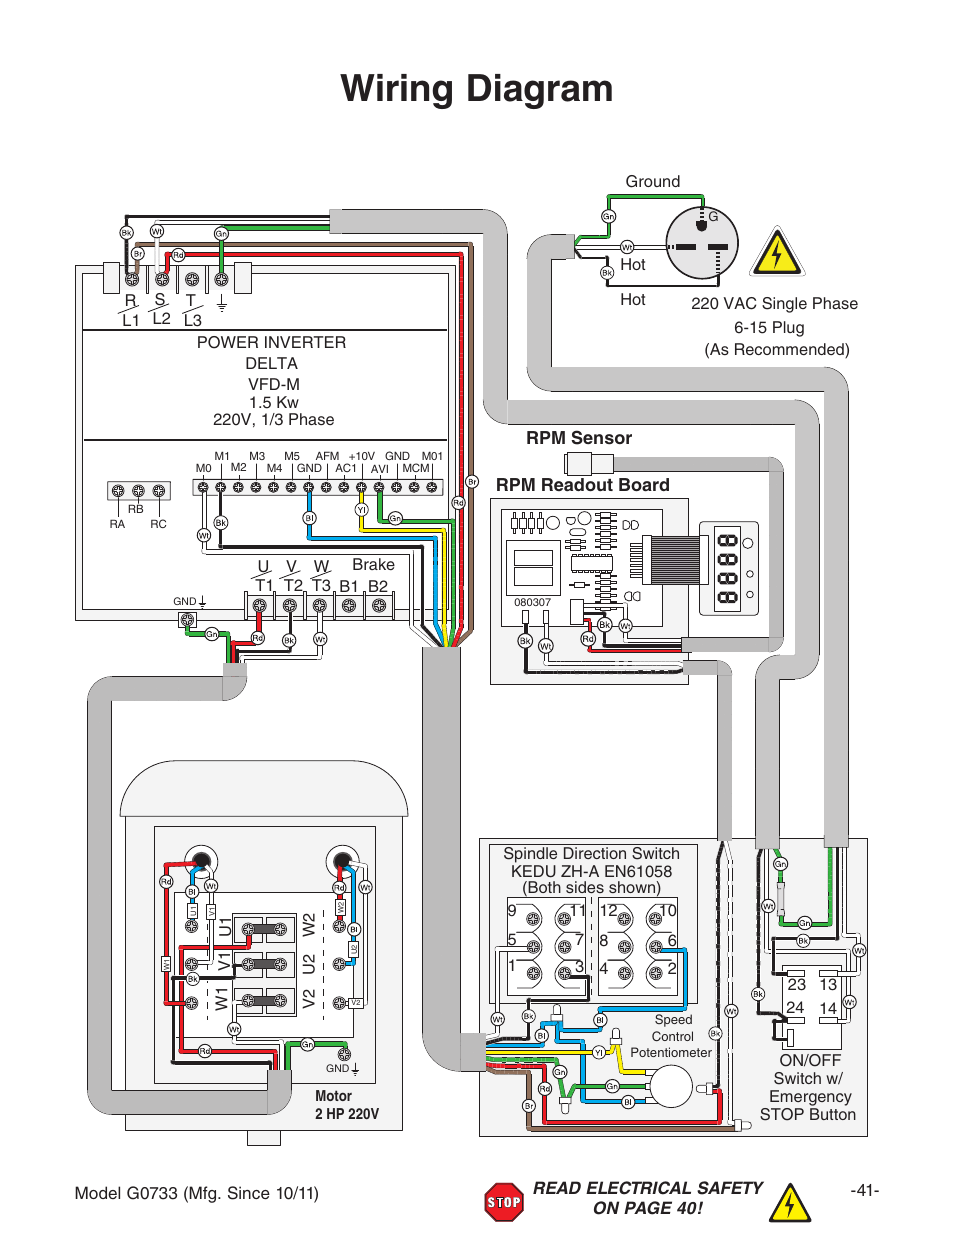 Three Phase 220 Wiring Diagram Lathe - Trusted Wiring Diagram •